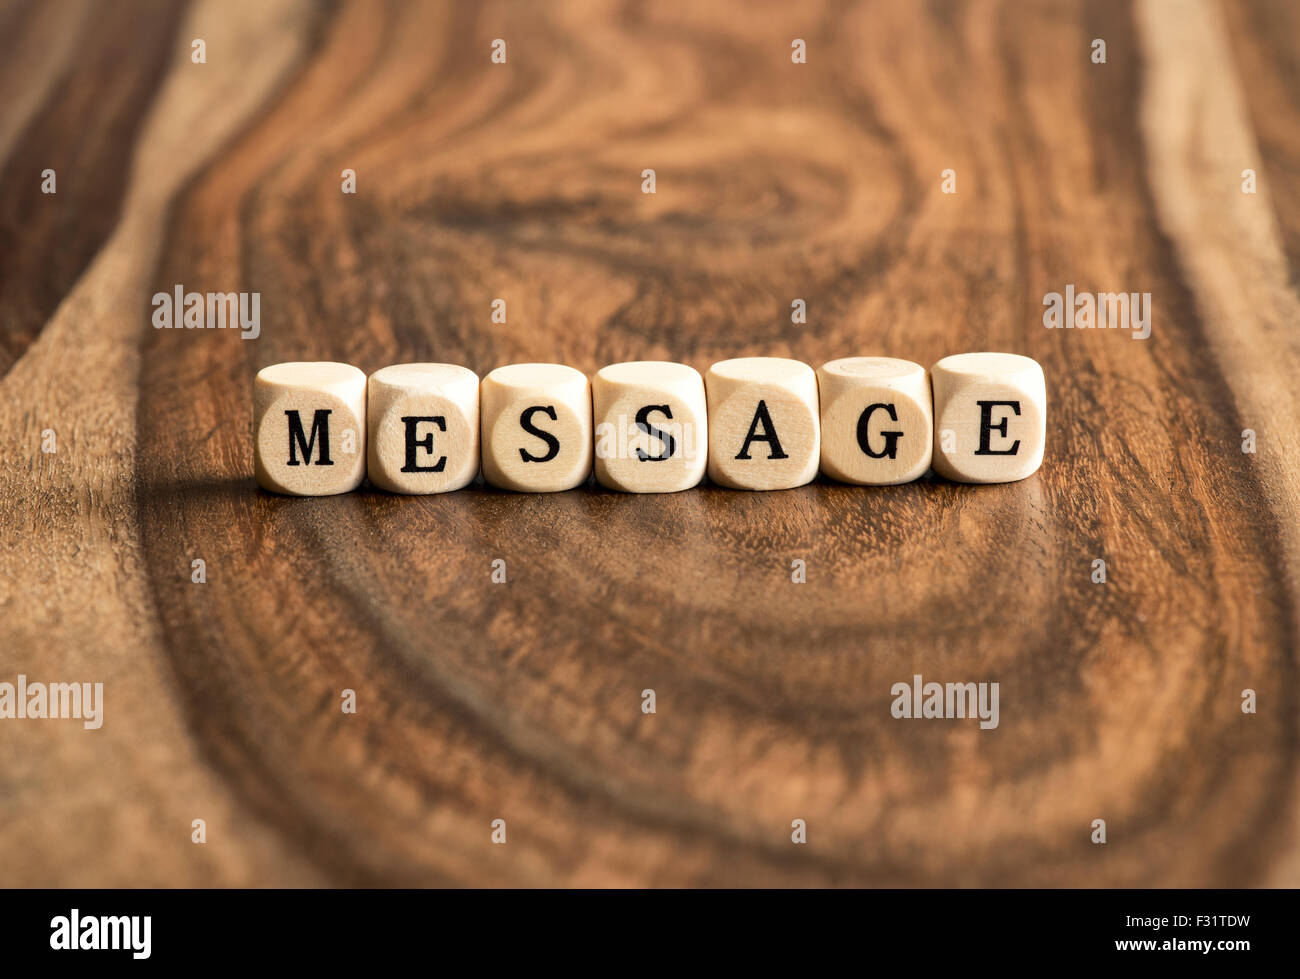 MESSAGE word background on wood blocks - Stock Image